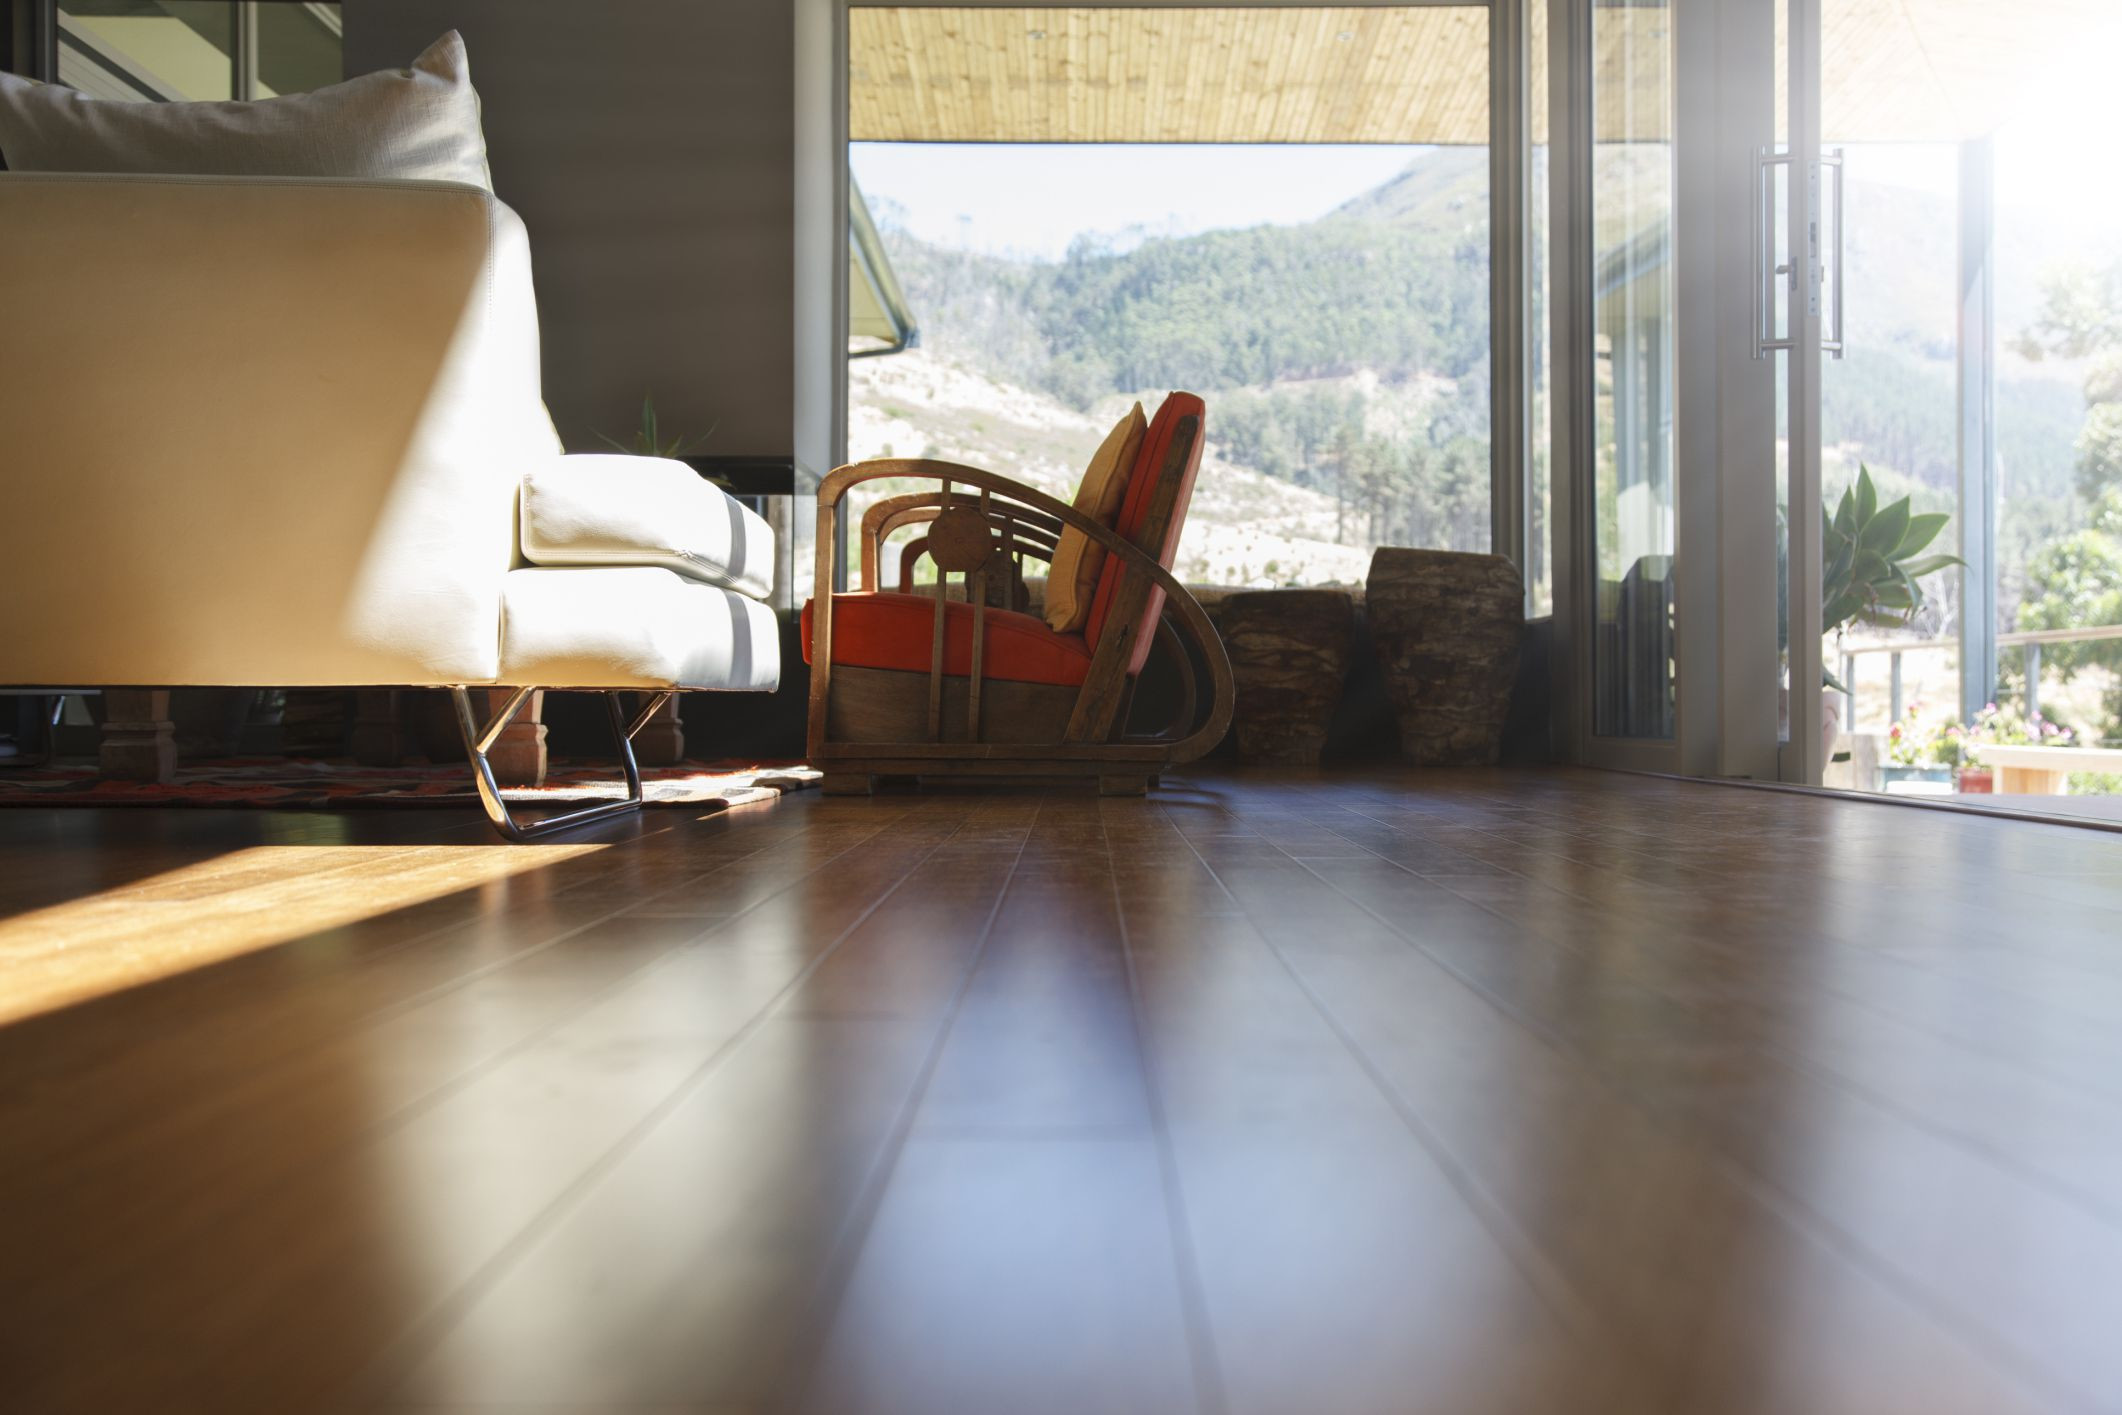 15 Fashionable Hardwood Floor Underlayment Recommendation 2021 free download hardwood floor underlayment recommendation of floating floors basics types and pros and cons with exotic hardwood flooring 525439899 56a49d3a3df78cf77283453d